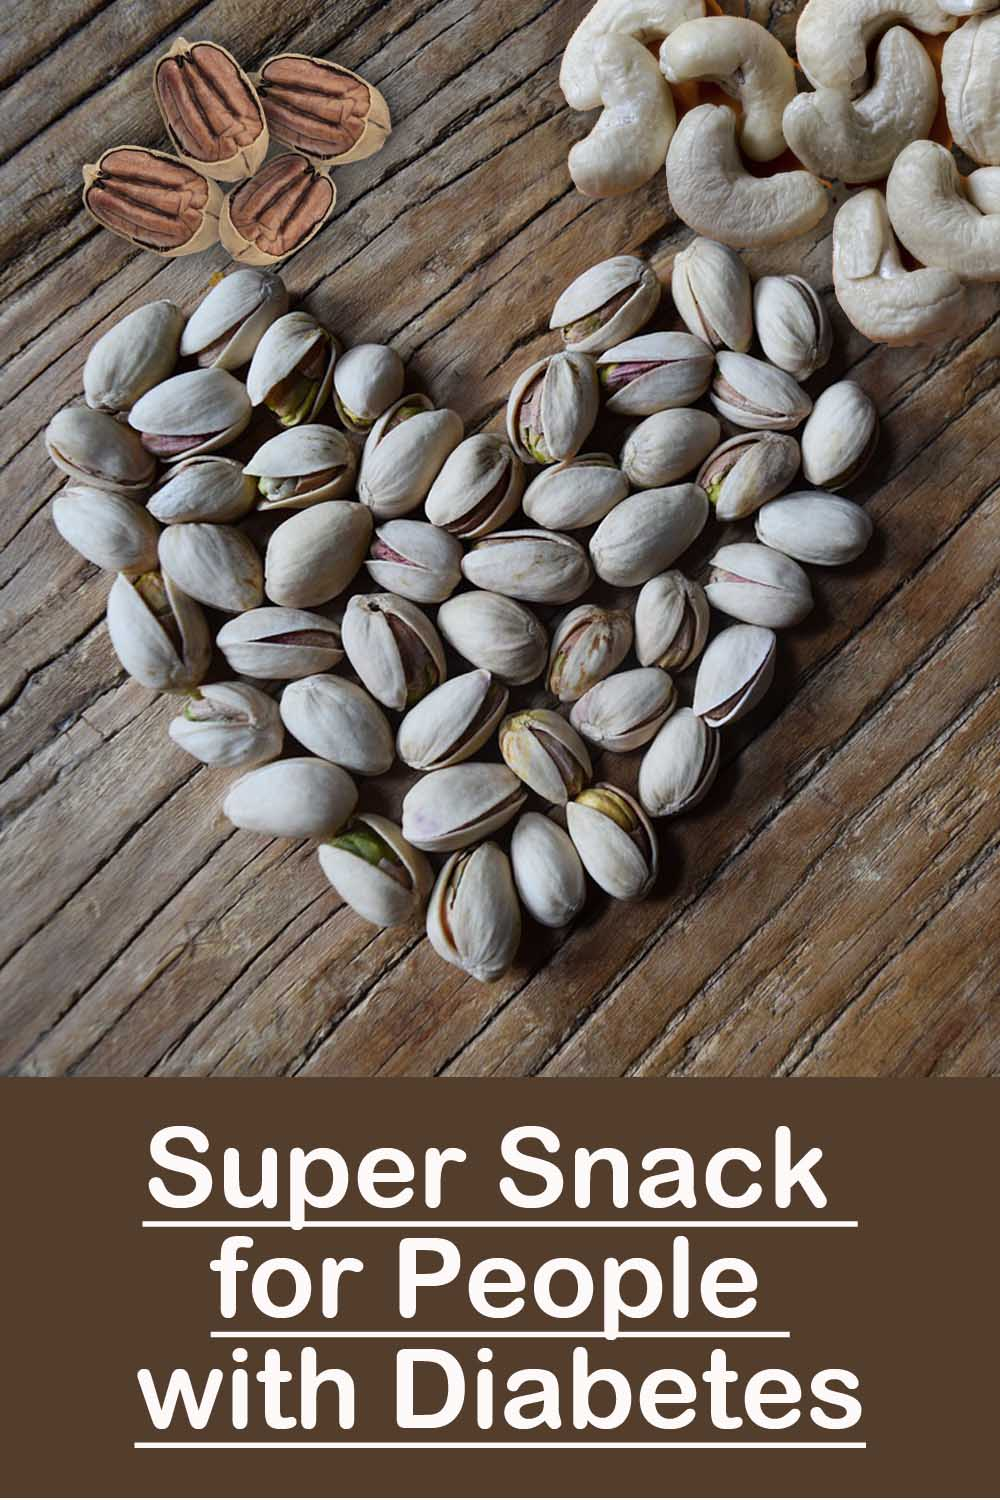 Super Snack for People with Diabetes